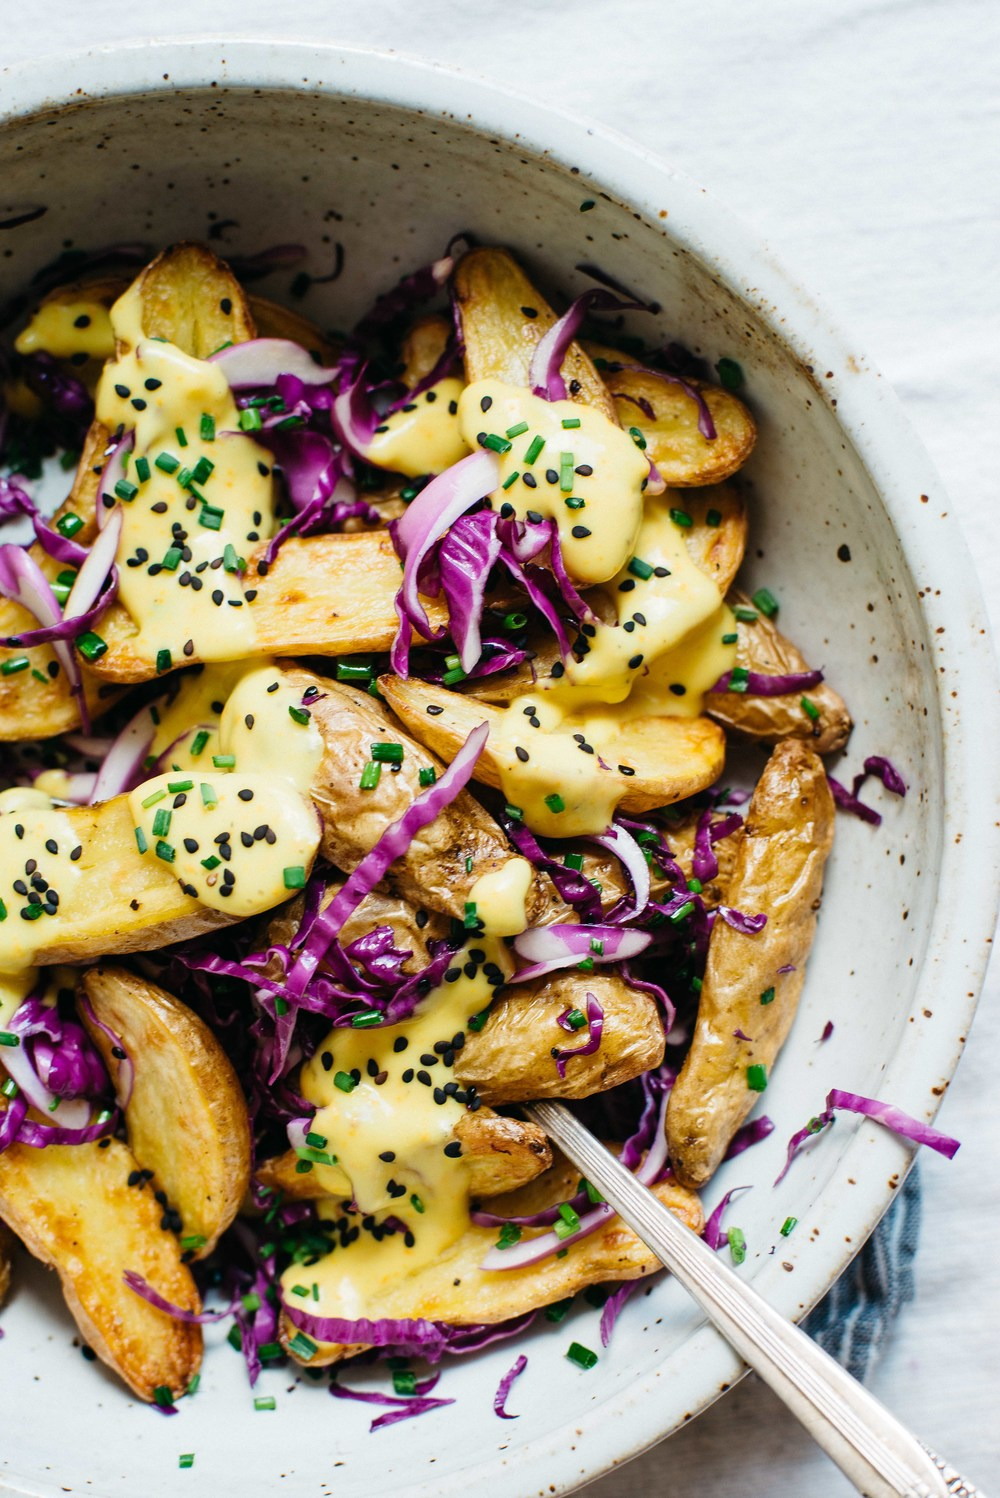 warm fingerling potatoes w/ garlic-turmeric sauce | dolly and oatmeal